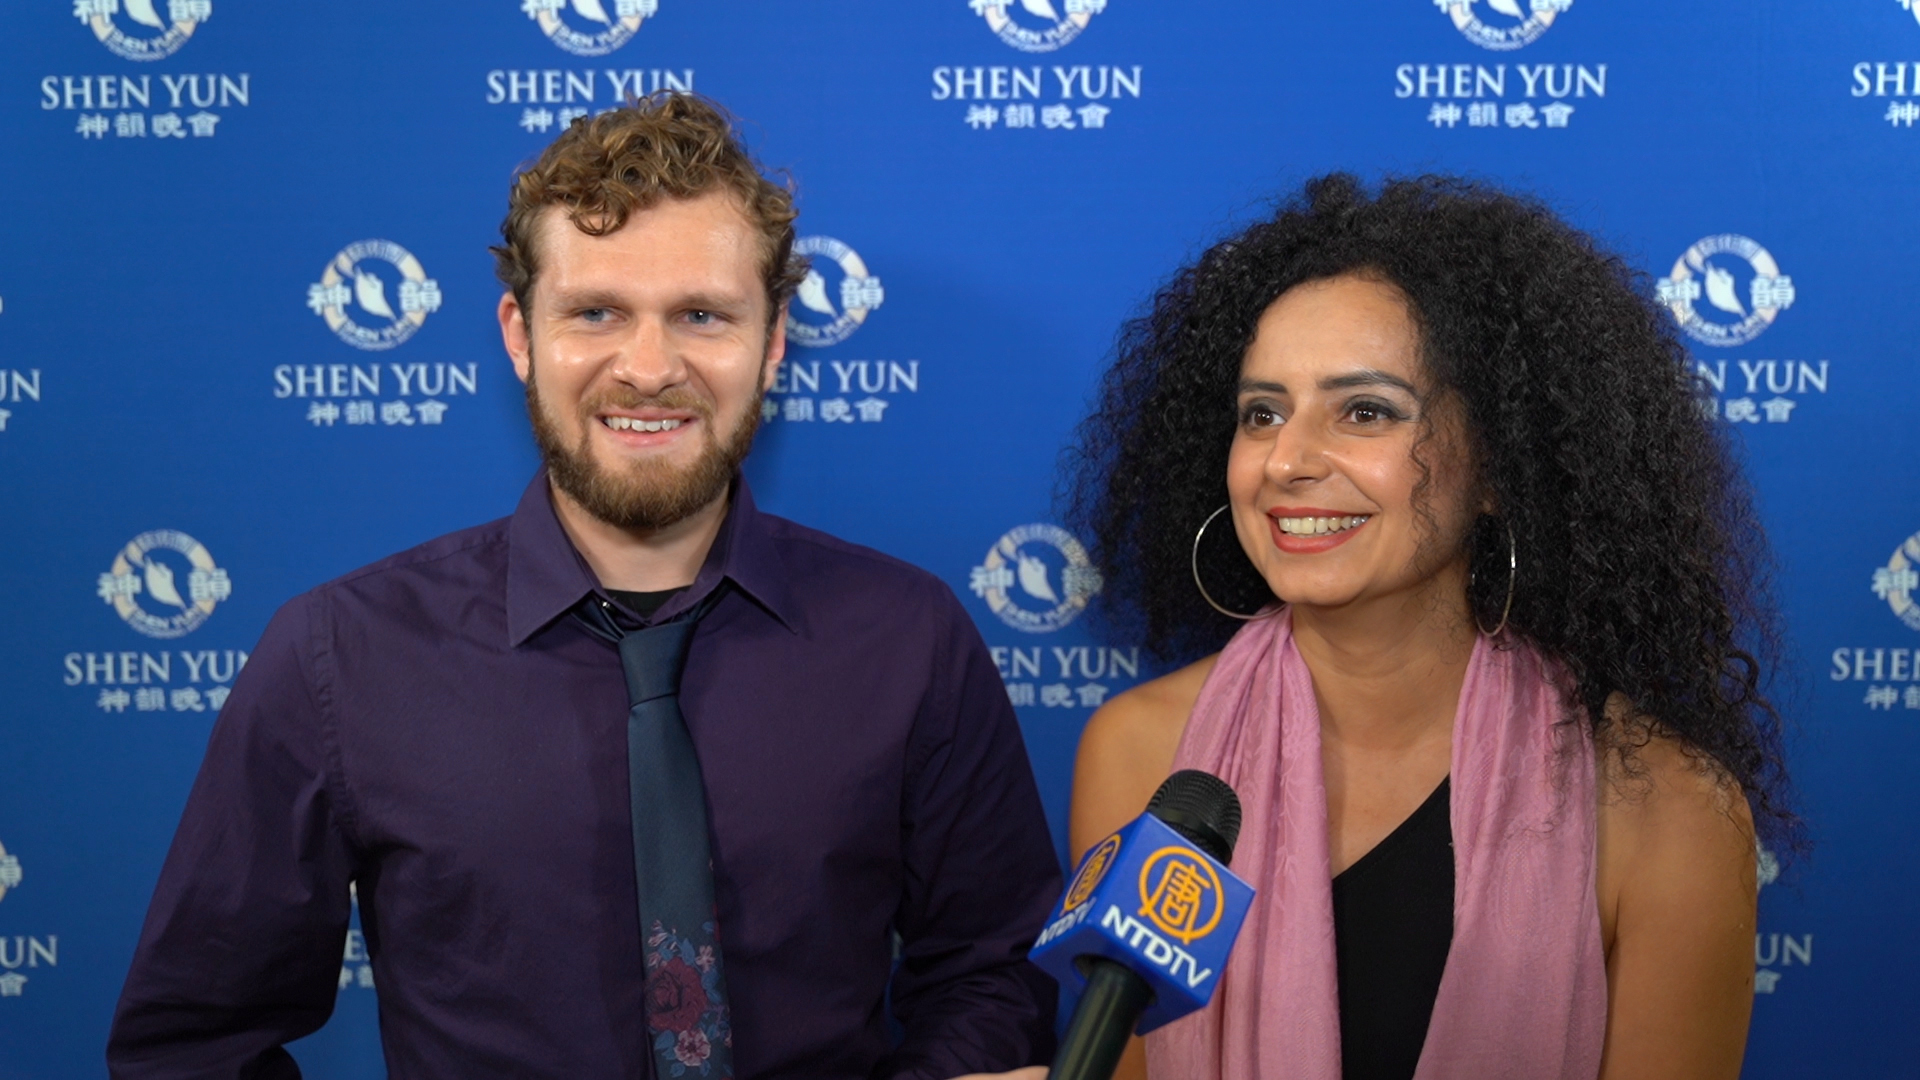 Audience: Shen Yun Brings Hope and Positivity to The World